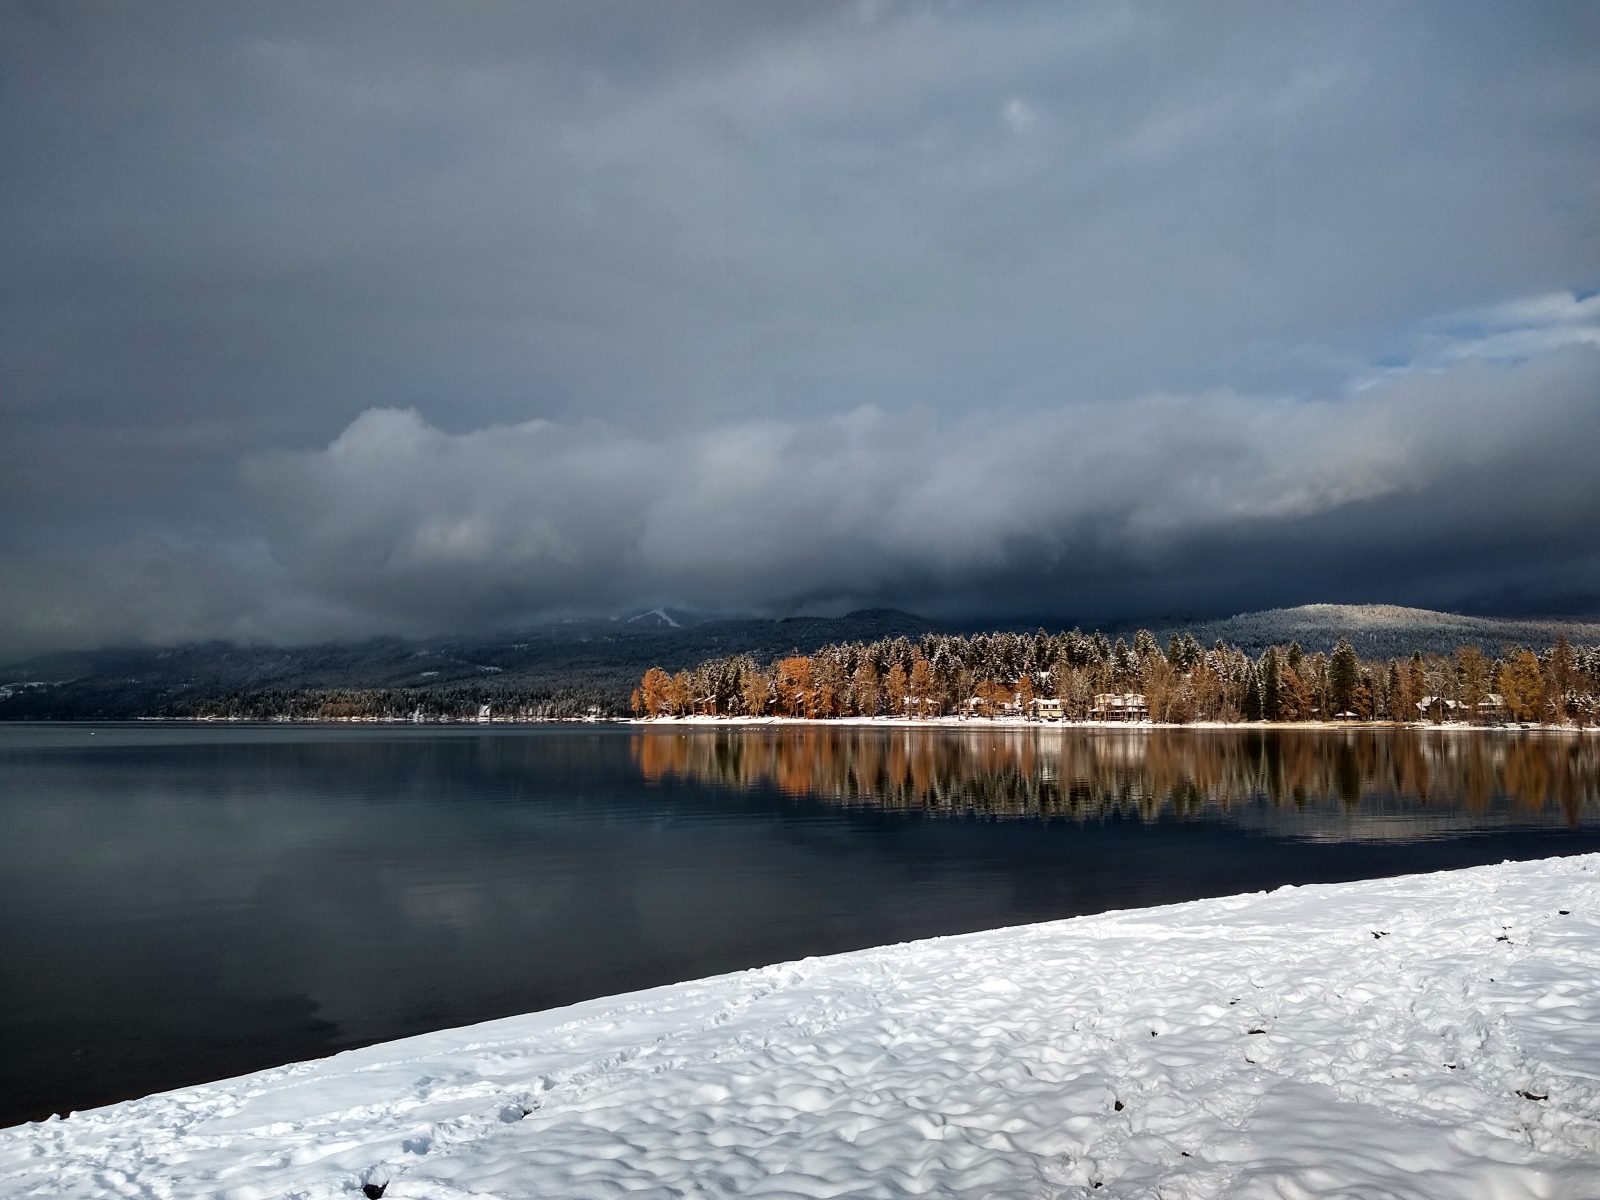 Snow, clouds, and Whitefish Lake